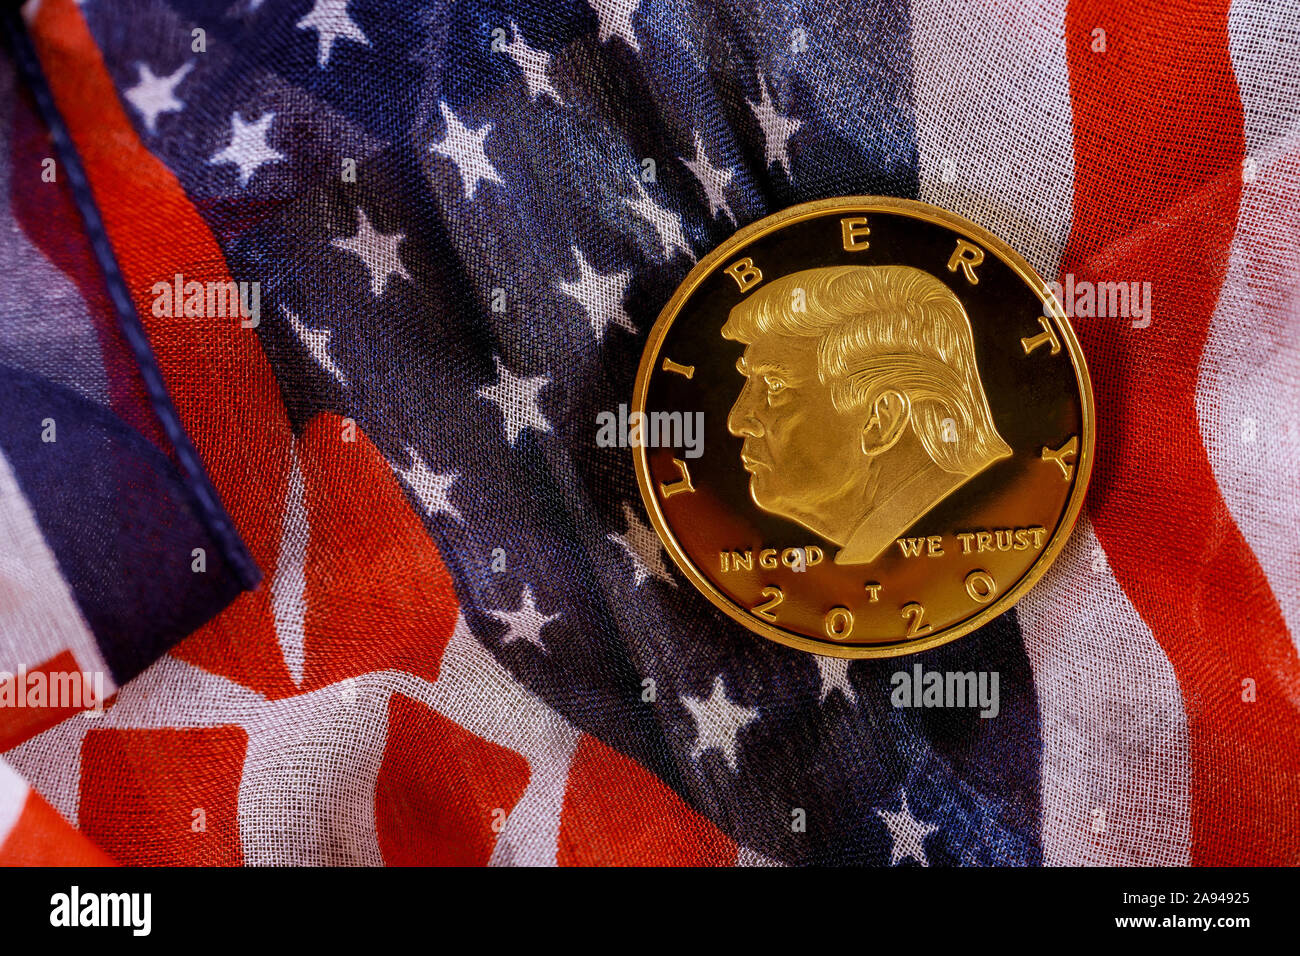 New York Election 2020.New York Ny Nov 12 2019 Donald Trump Coin In Against Usa